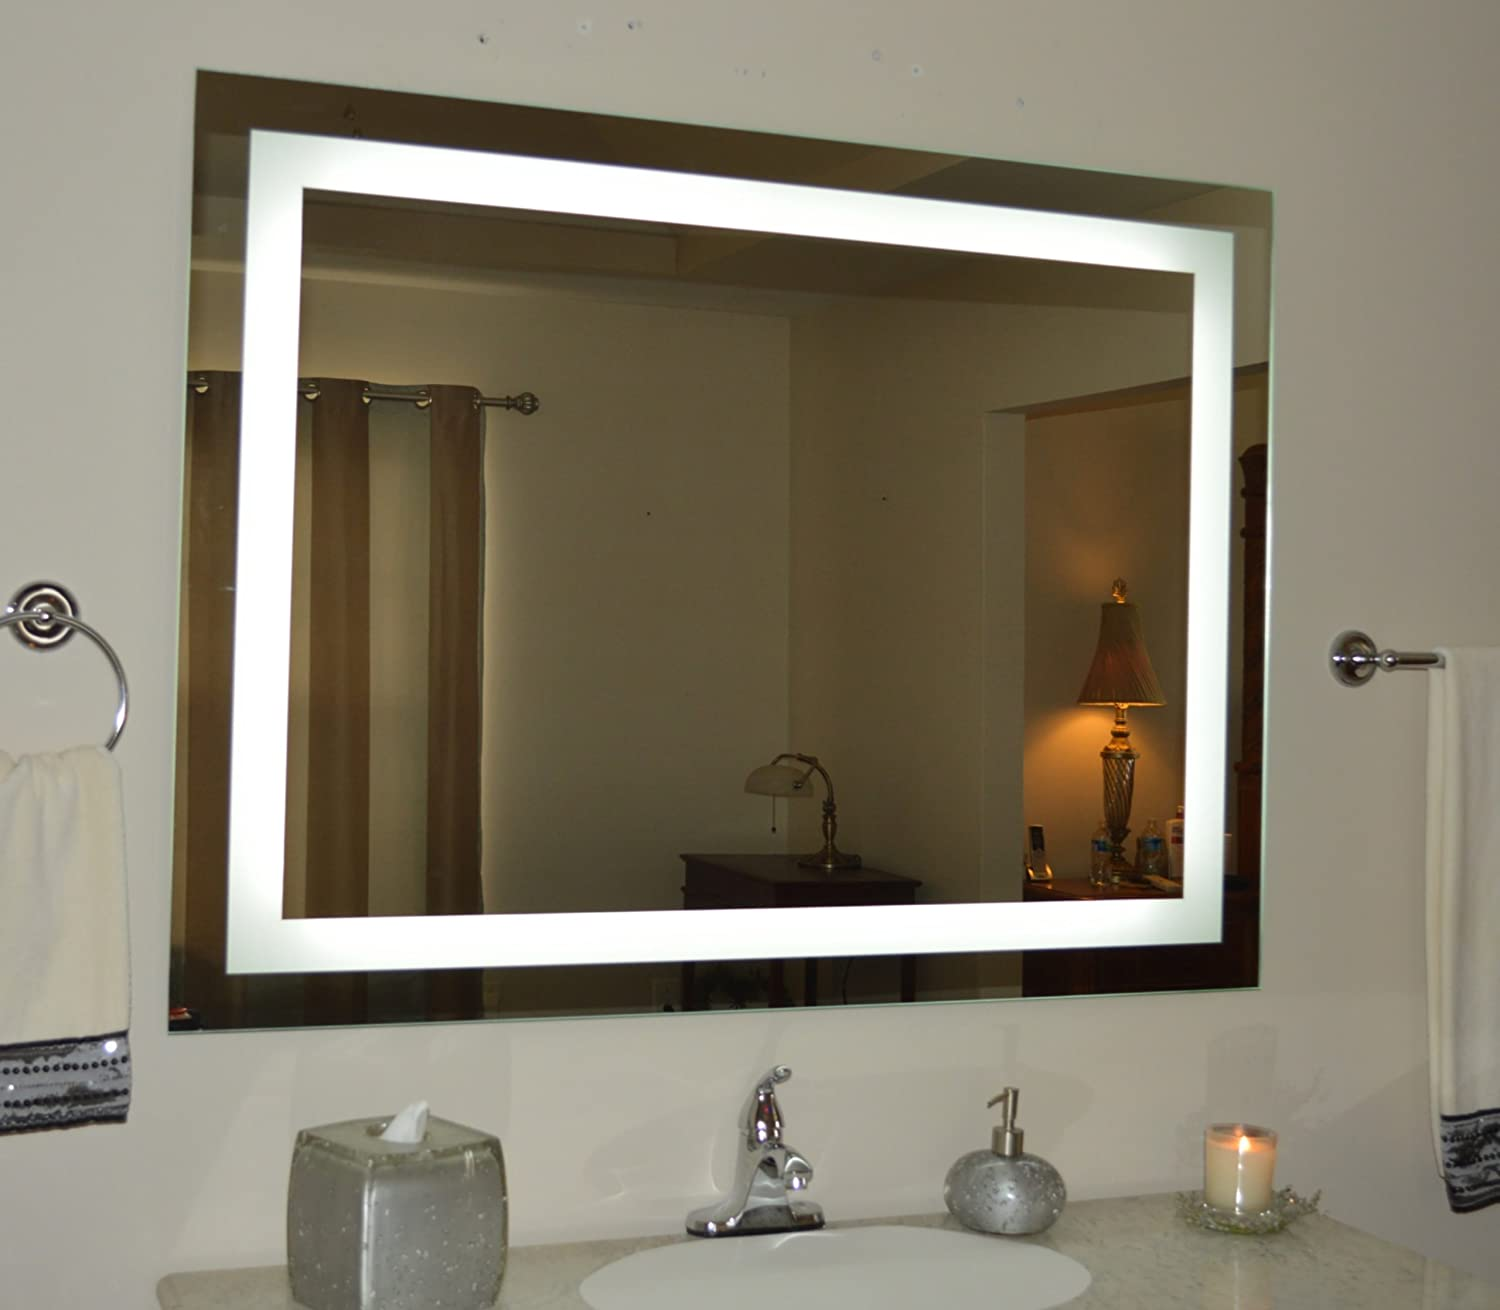 Amazon wall mounted lighted vanity mirror led mam84836 amazon wall mounted lighted vanity mirror led mam84836 commercial grade 48 home kitchen aloadofball Image collections